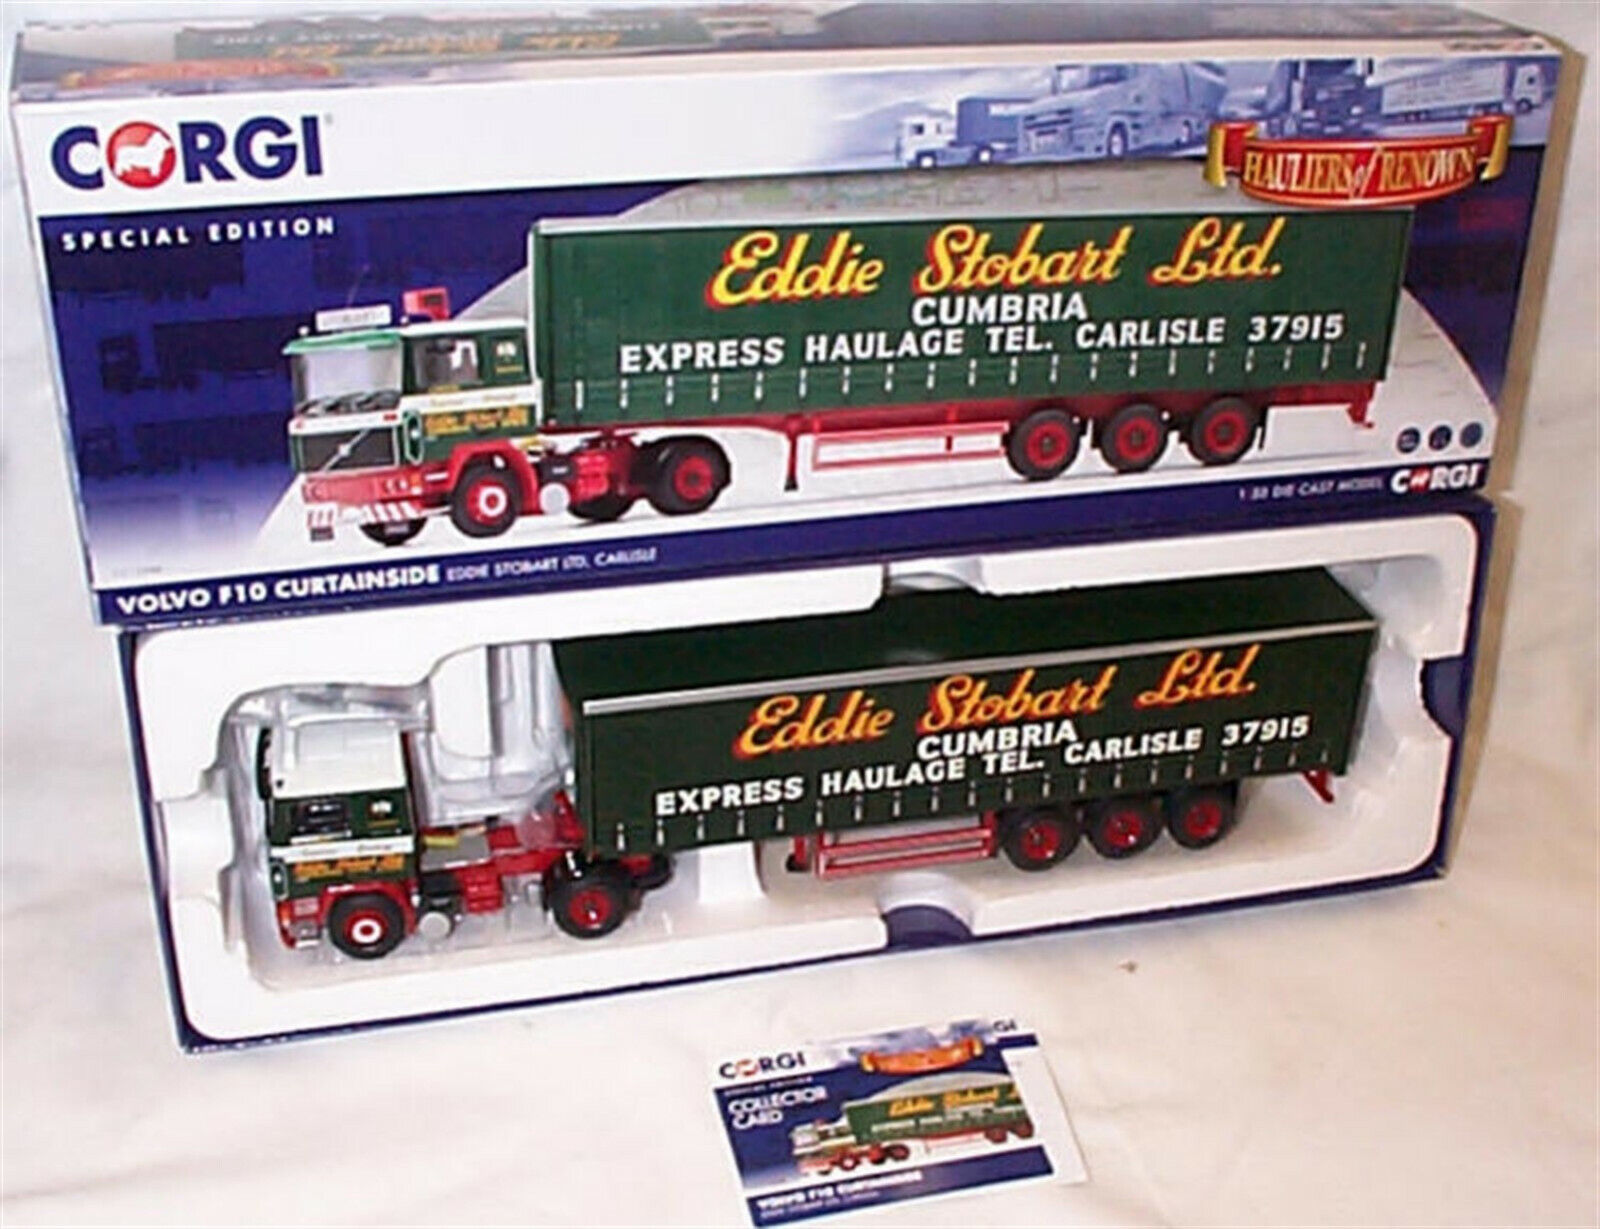 Volvo F10 Curtainside Eddie Stobart CC15508 1-50 New in box Special edition